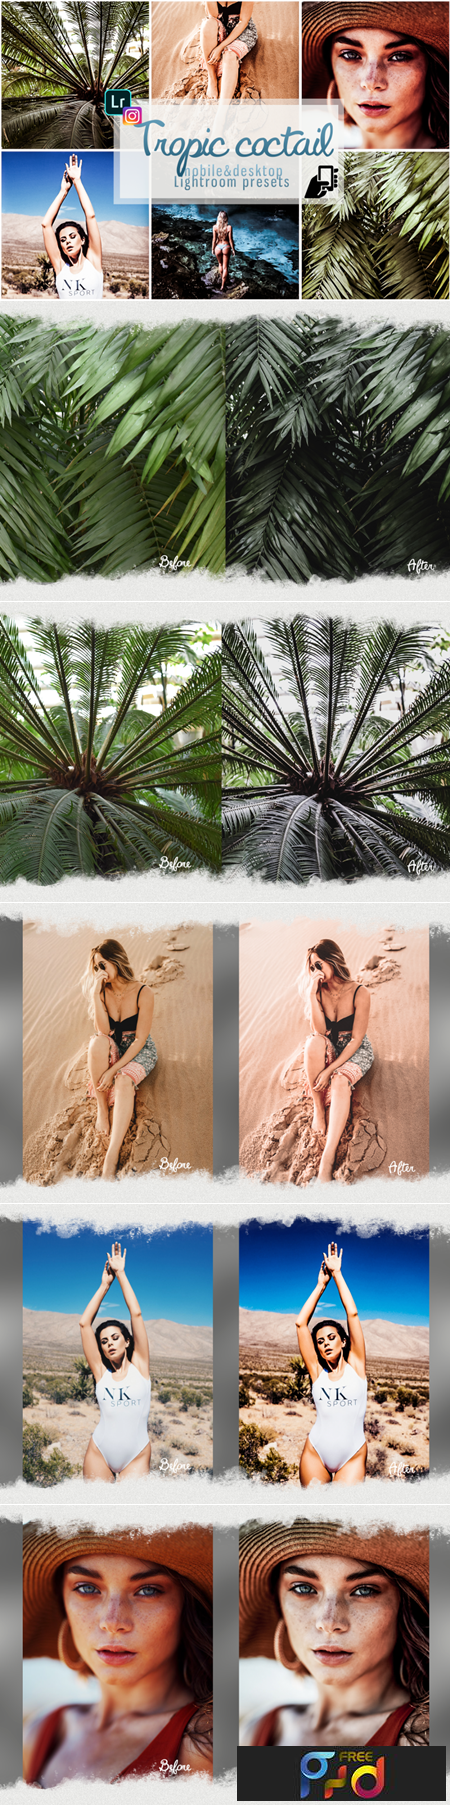 Tropic coctail presets lightroom pc mobile 3553665 1